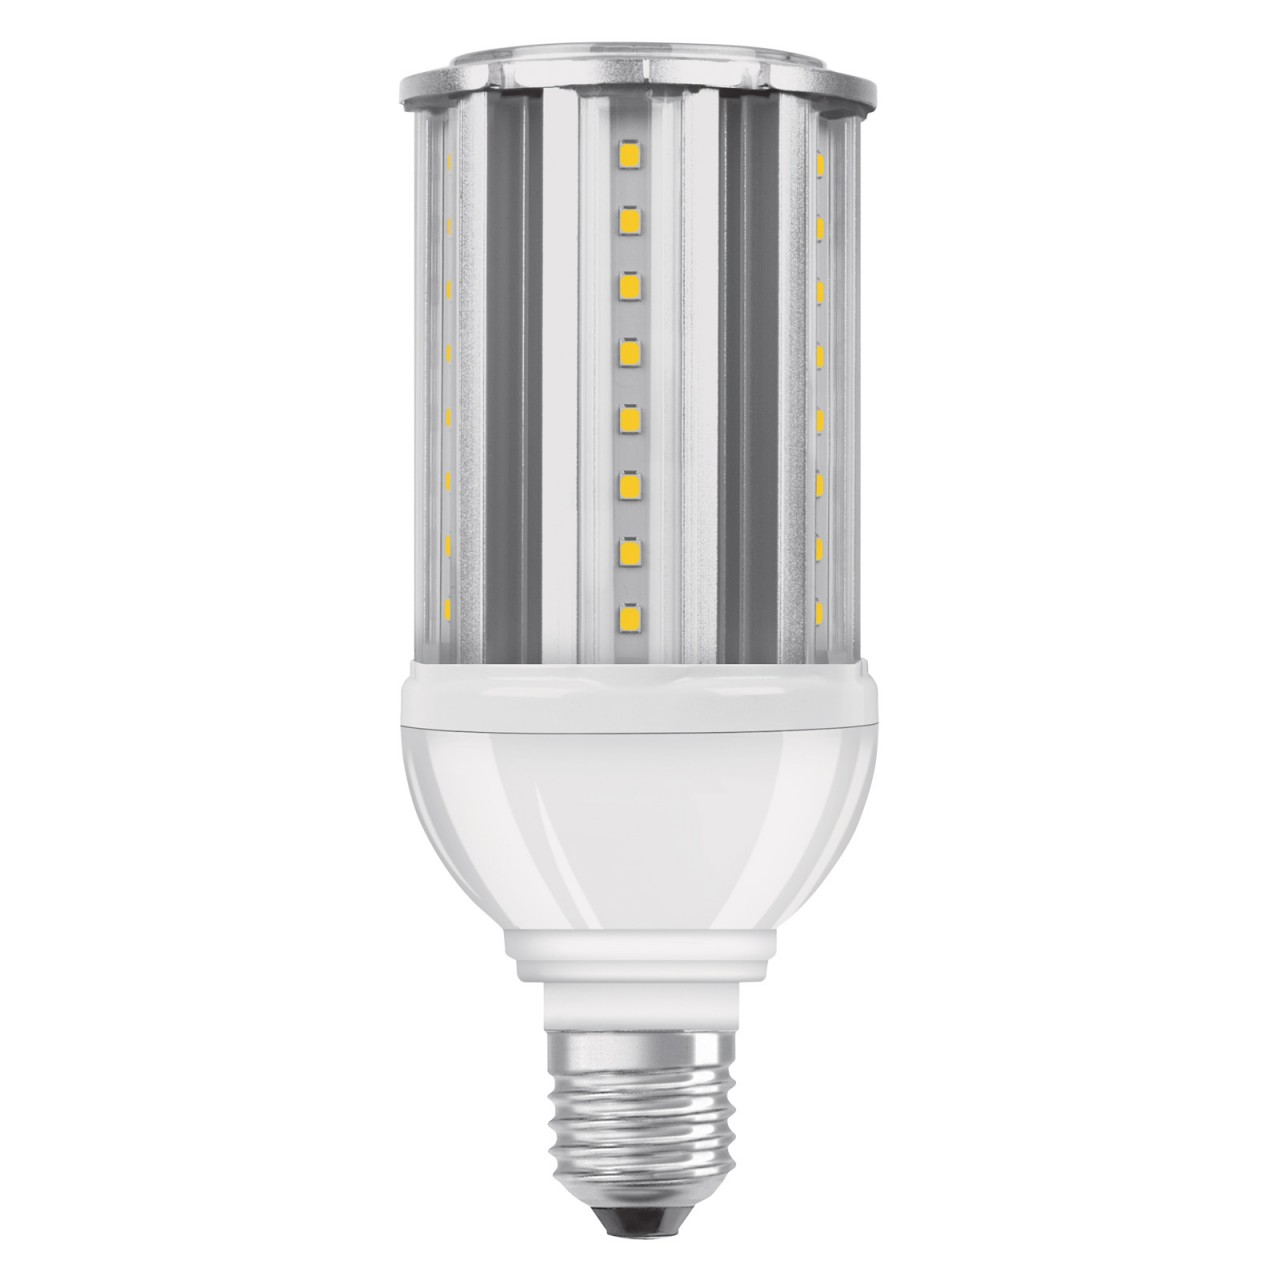 Led lampen e27 2000 lumen image collections mbel furniture ideen osram parathom hql led lampe e27 18 watt 2000 lumen neutral white osram parathom hql led parisarafo Gallery